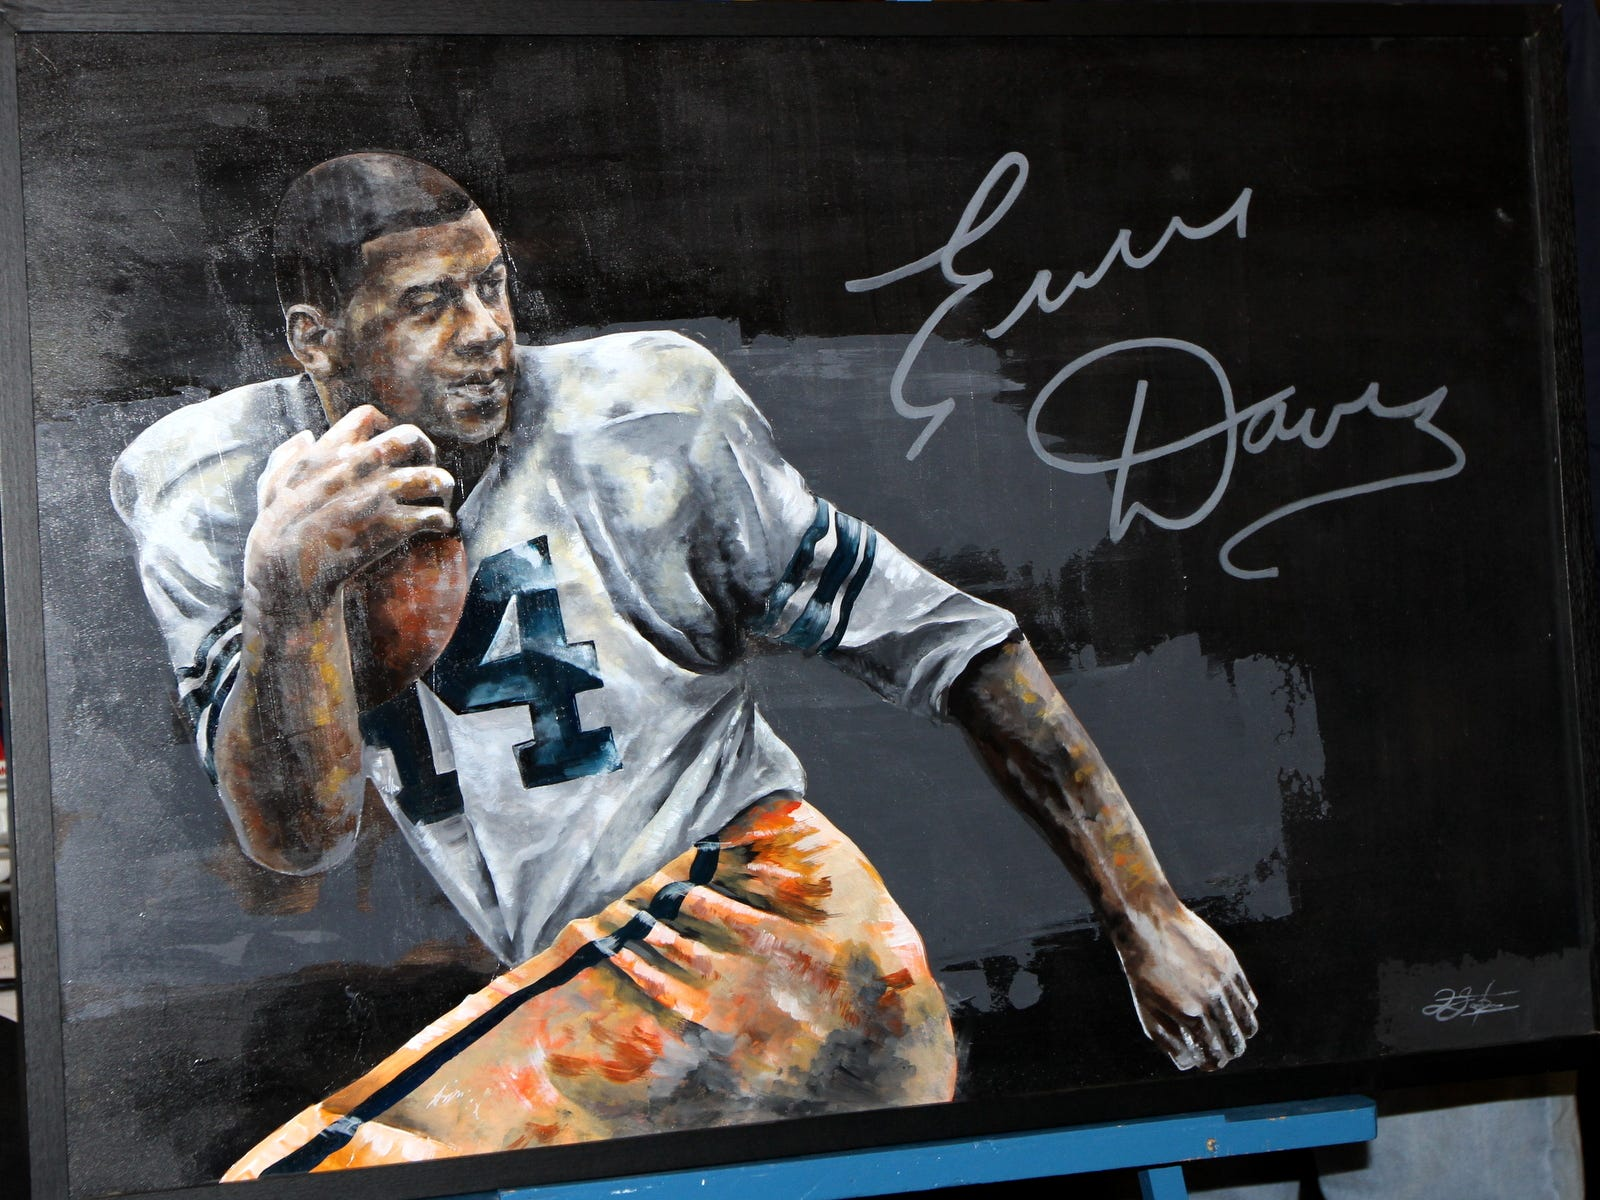 This portrait of Ernie Davis, which was commissioned by artist Rashad Sandroni, was unveiled Saturday by the Chemung County Hall of Fame committee at the Arnot Mall in Big Flats.